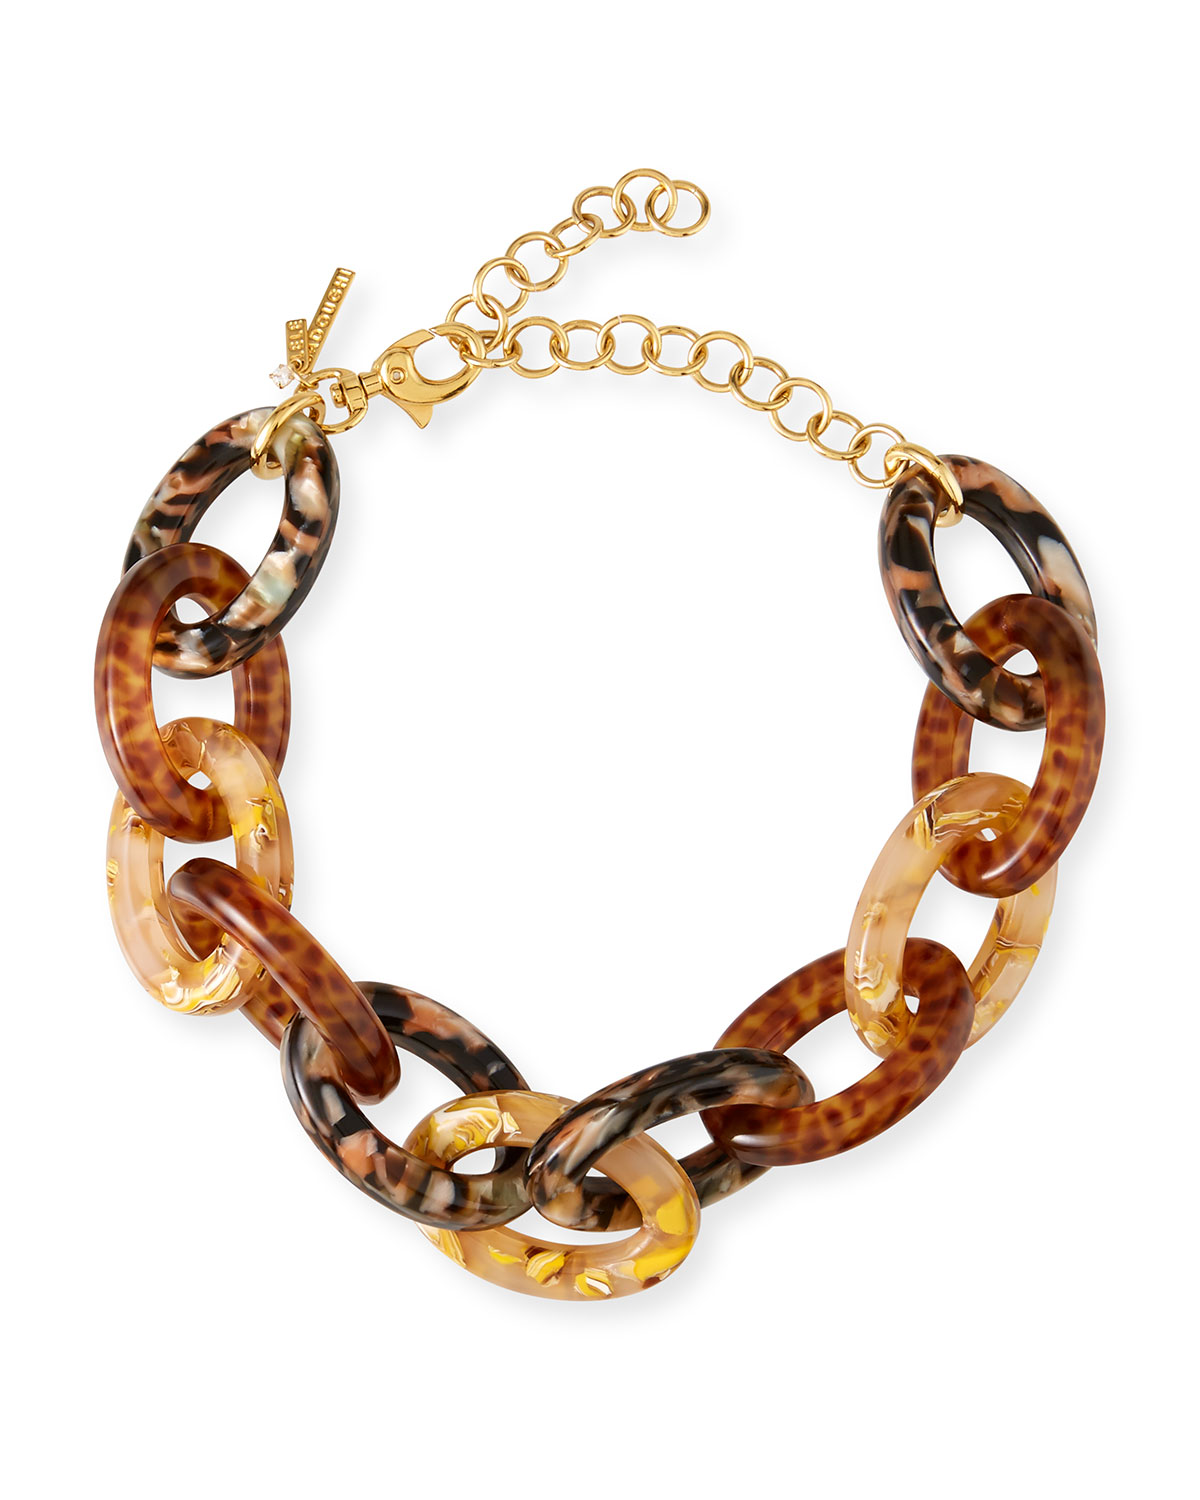 Lele Sadoughi Accessories ACETATE CABLE-LINK NECKLACE, BROWN